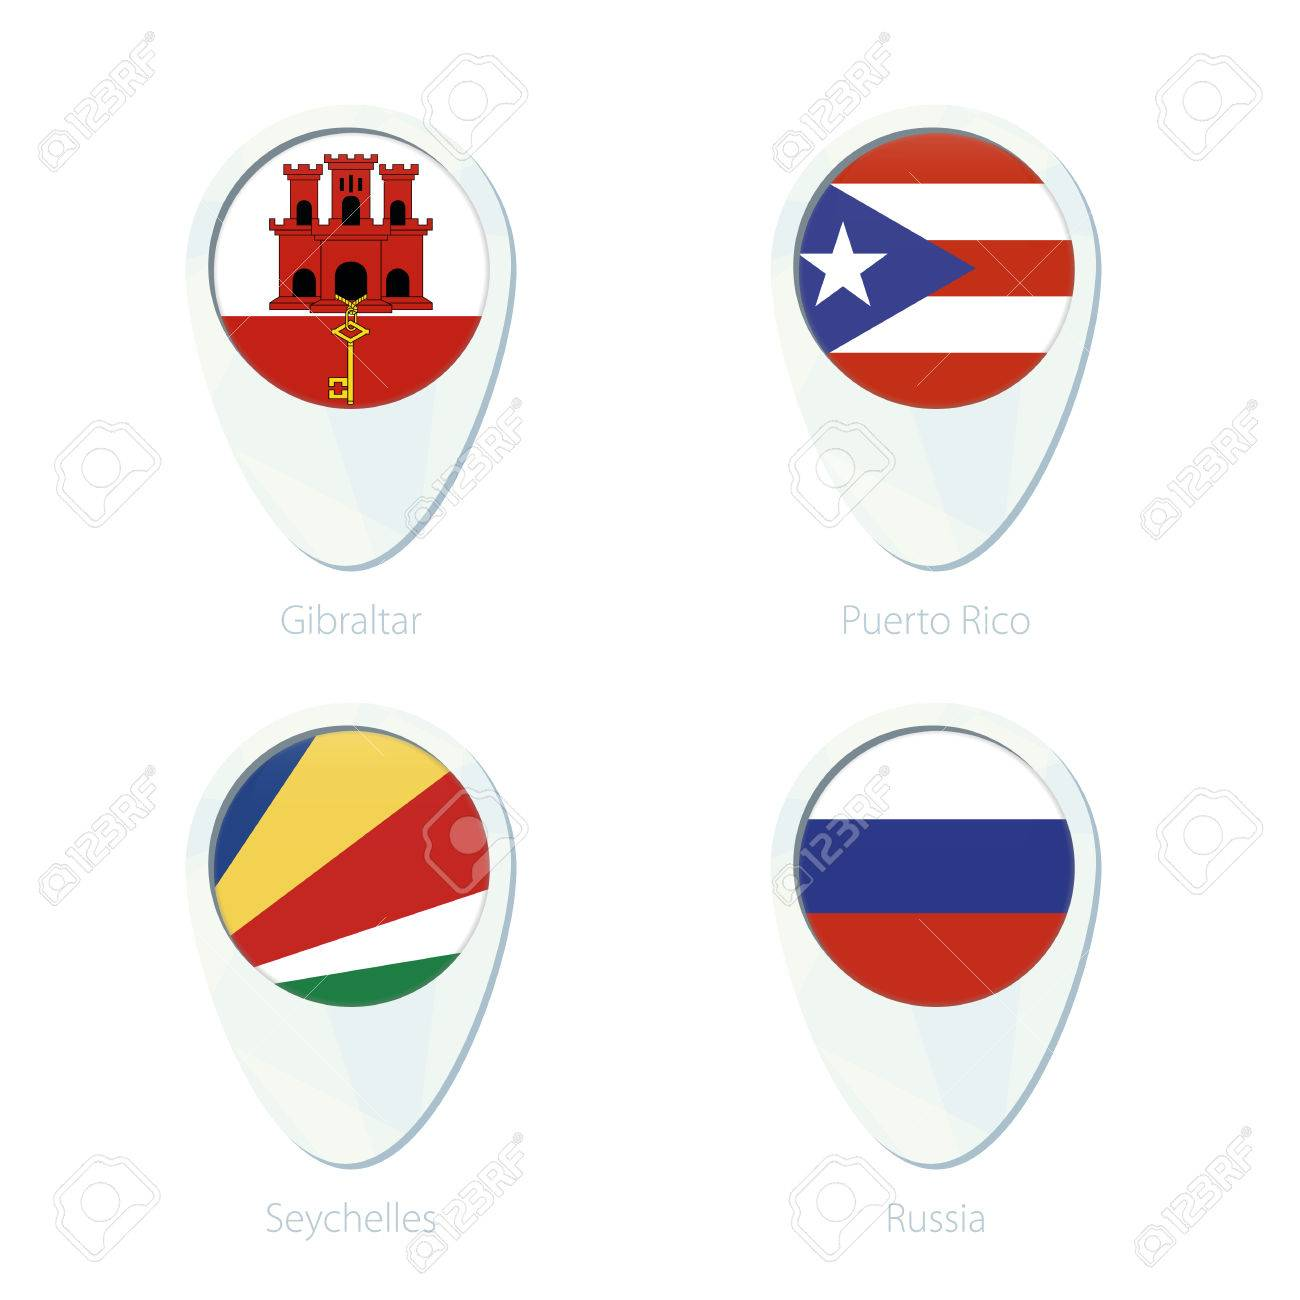 Gibraltar Puerto Rico Seychelles Russia Flag Location Map